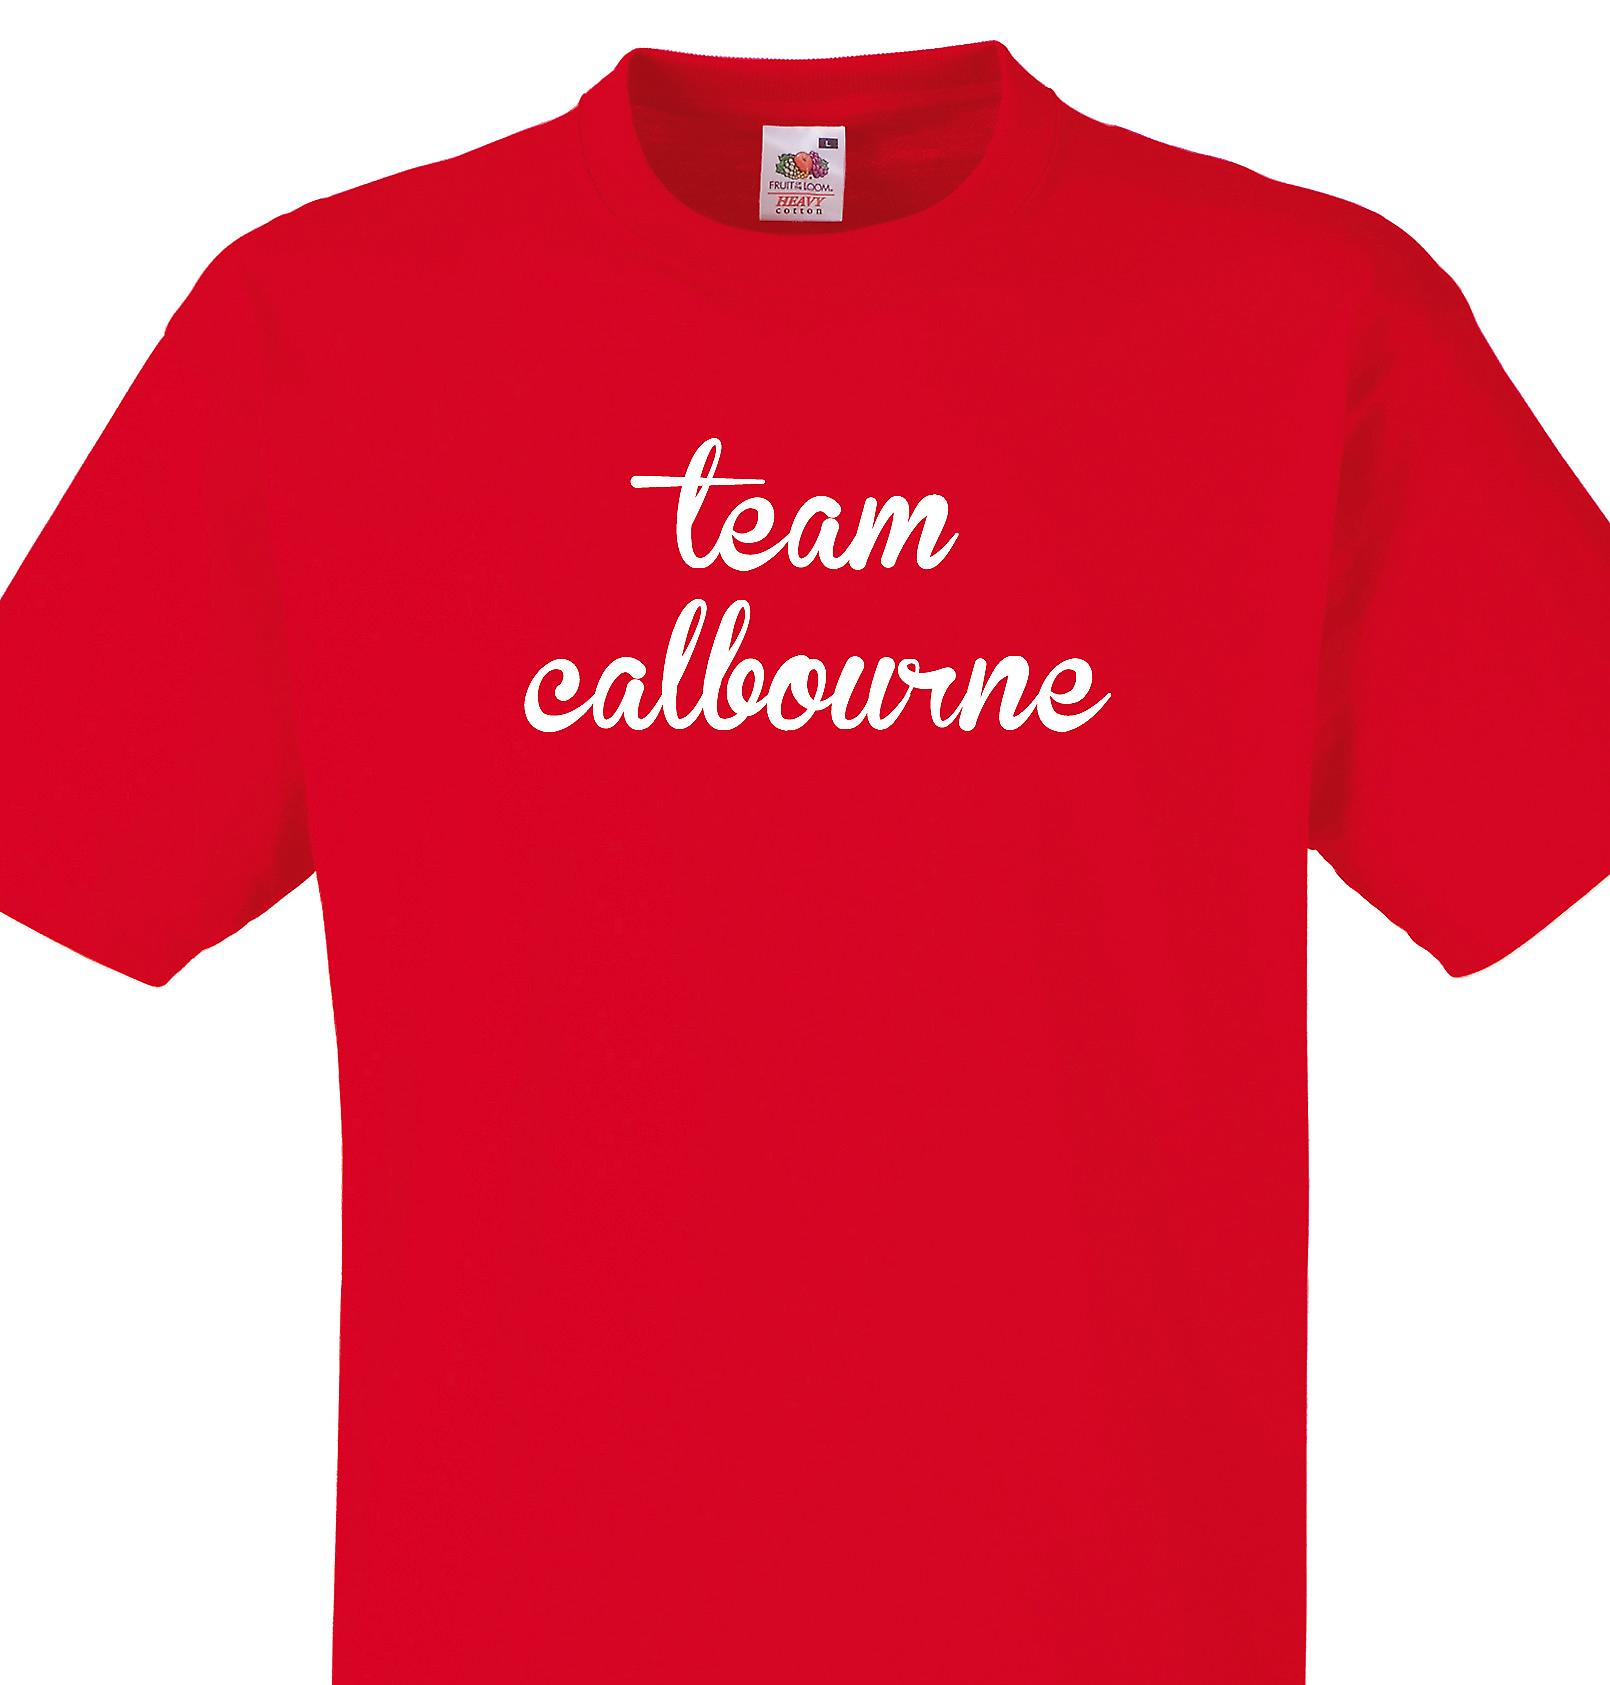 Team Calbourne Red T shirt